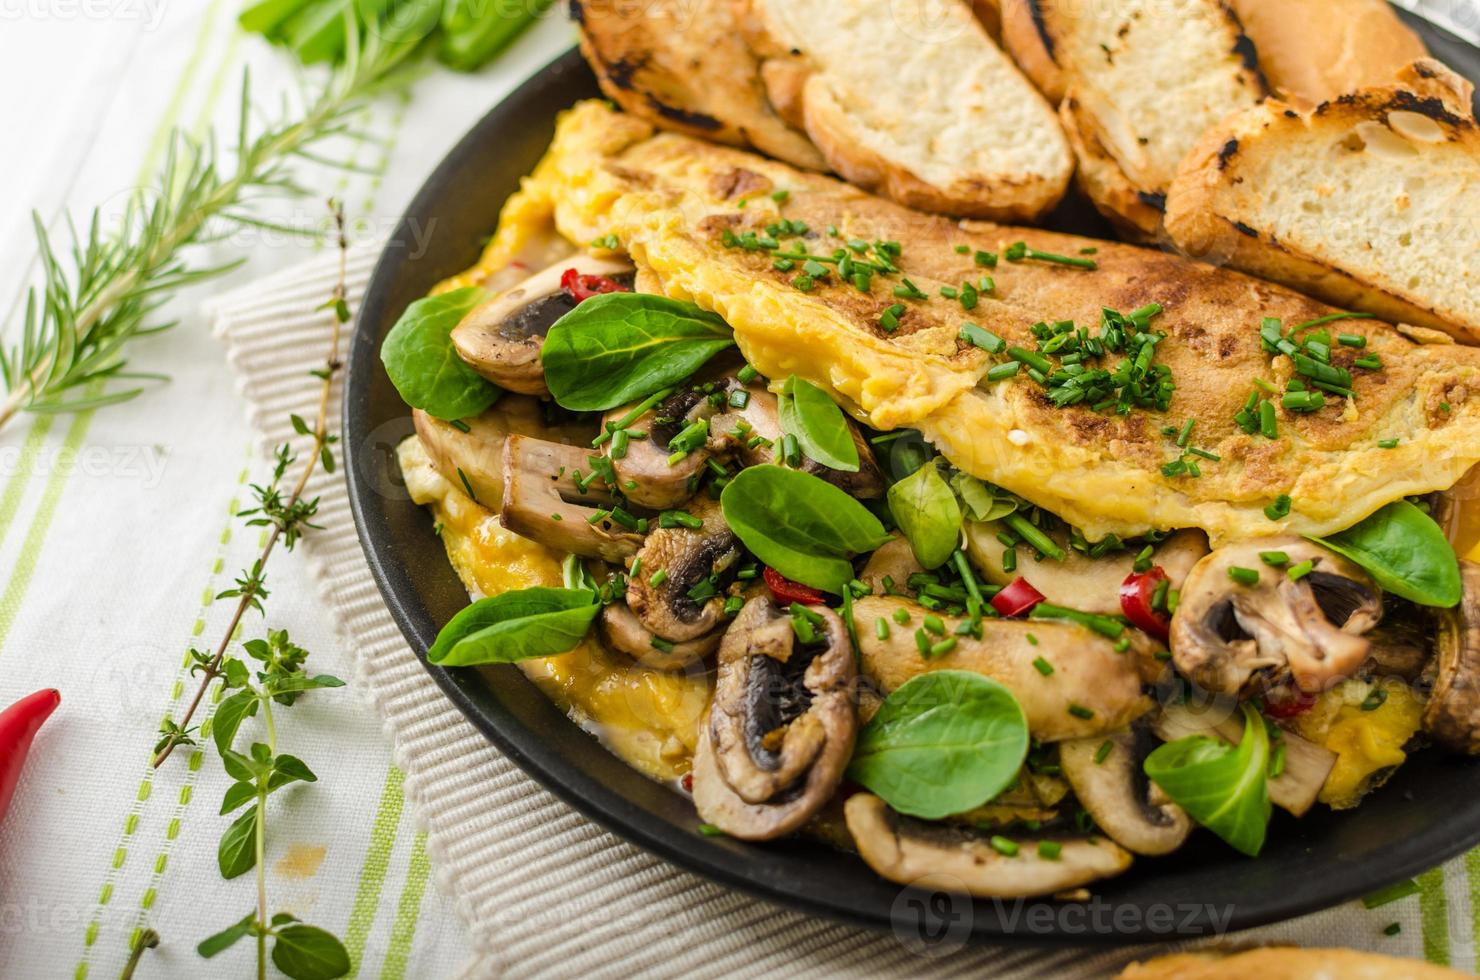 Omelet with mushrooms, lamb's lettuce, herbs and chilli photo